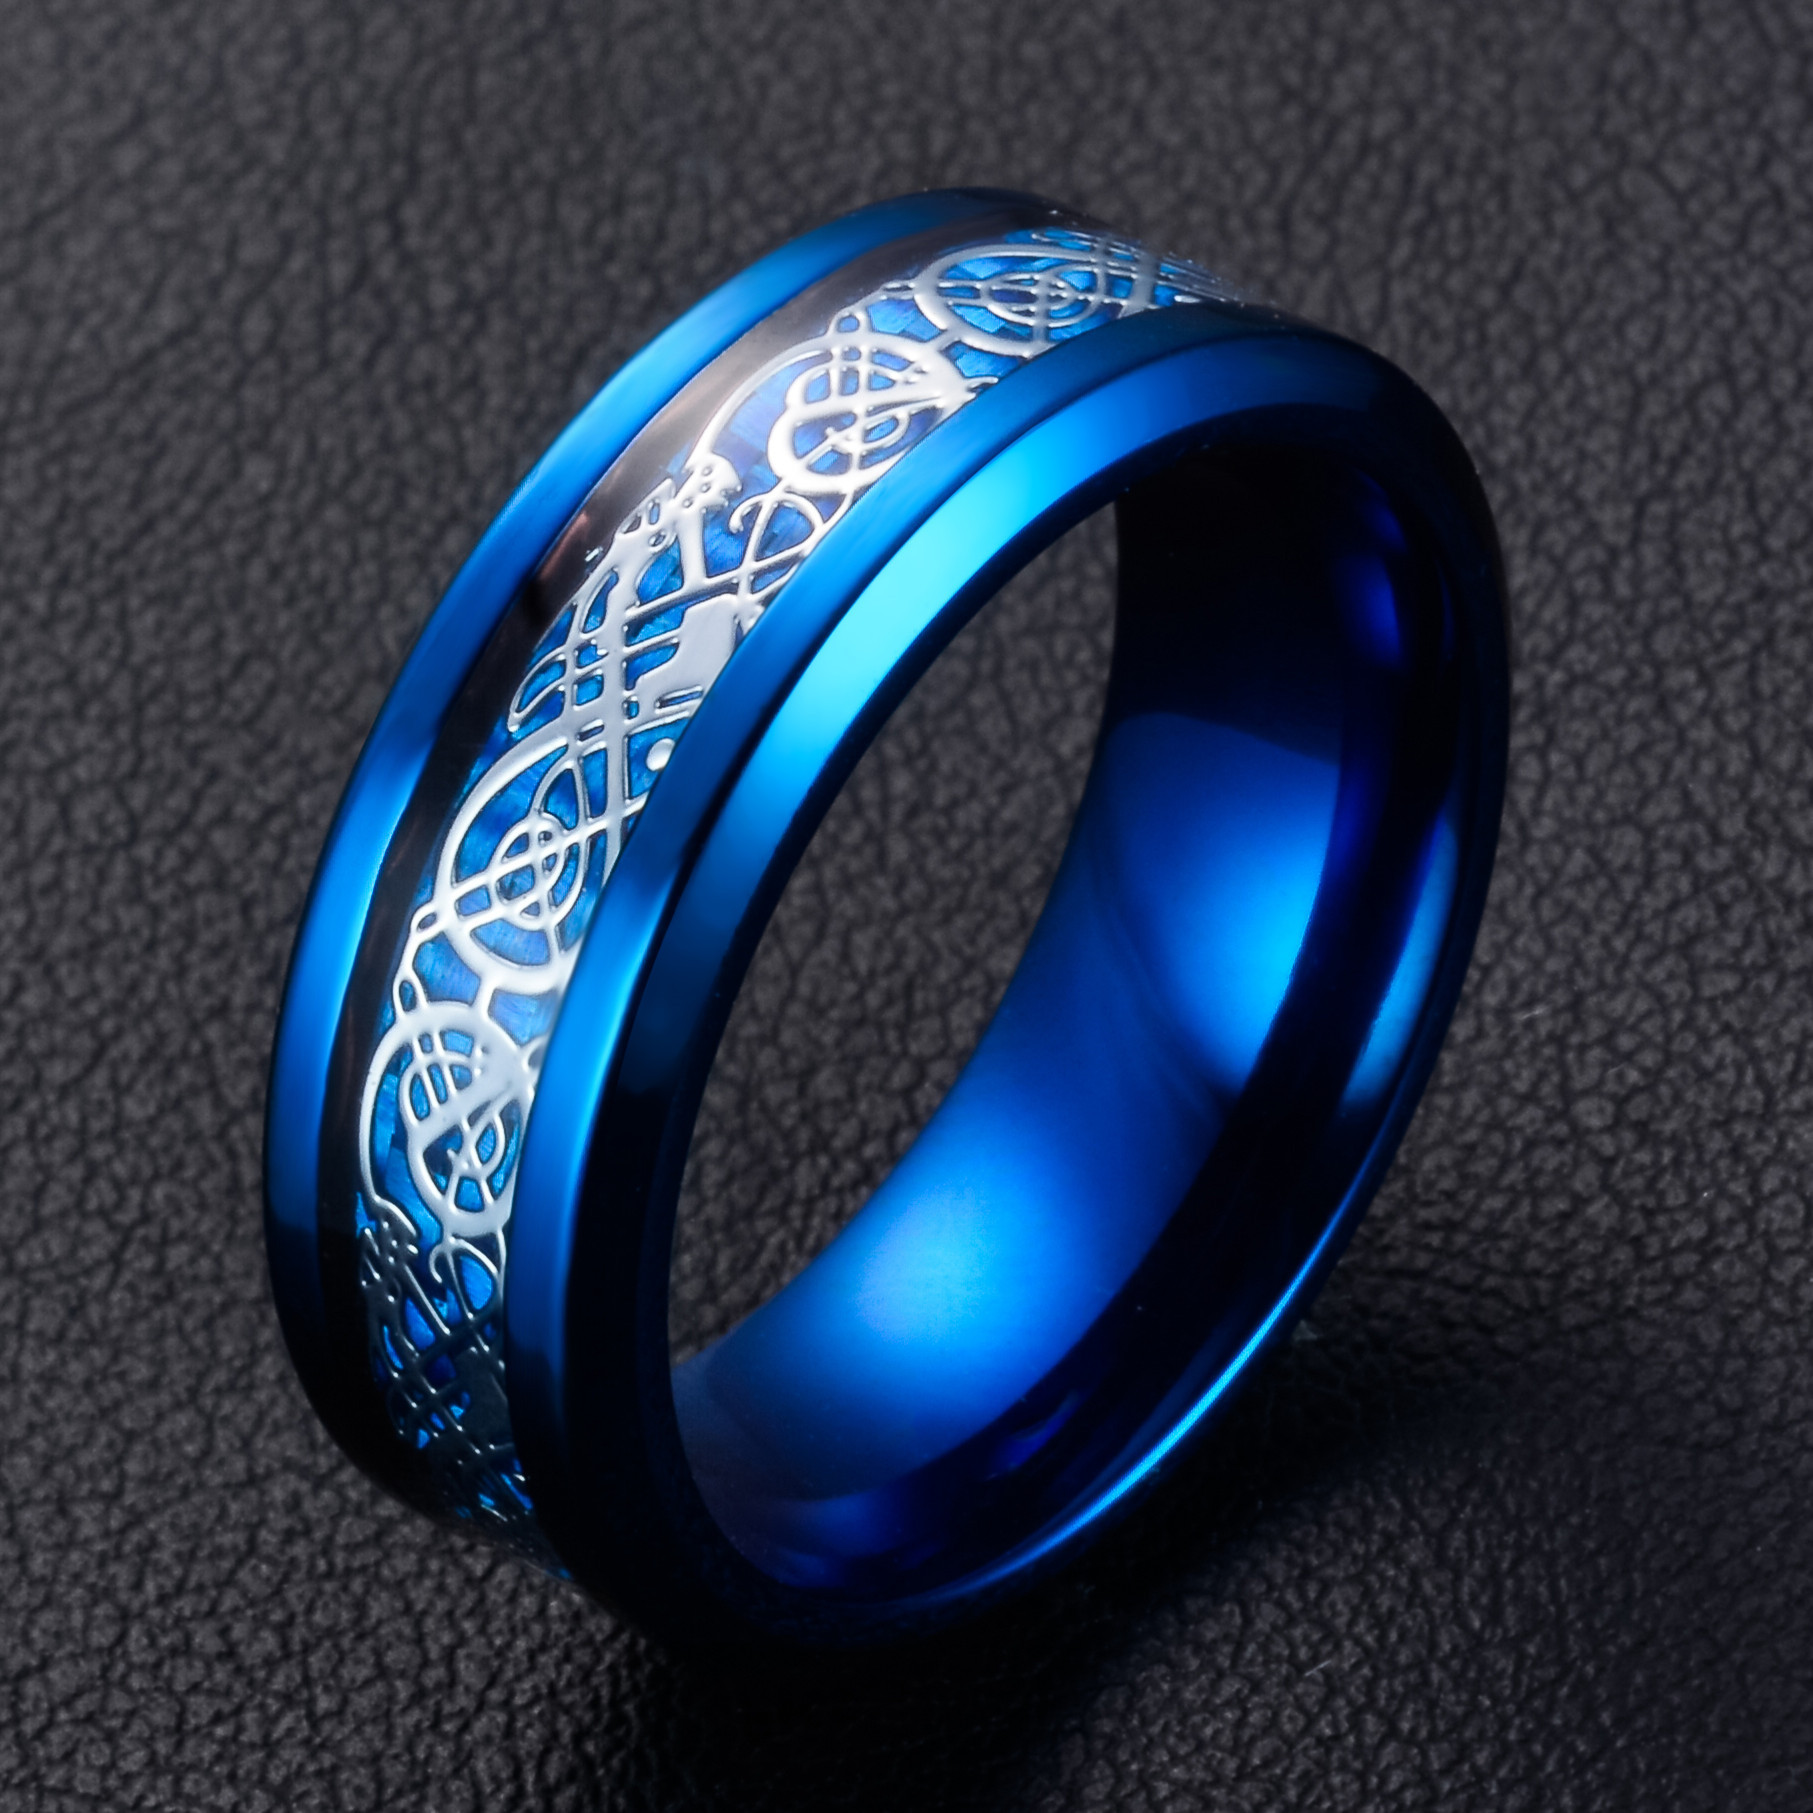 rings blue retro classic steel jewelry cool stone ring man store dragon stainless quality s with men product claw red black hiqh skull online